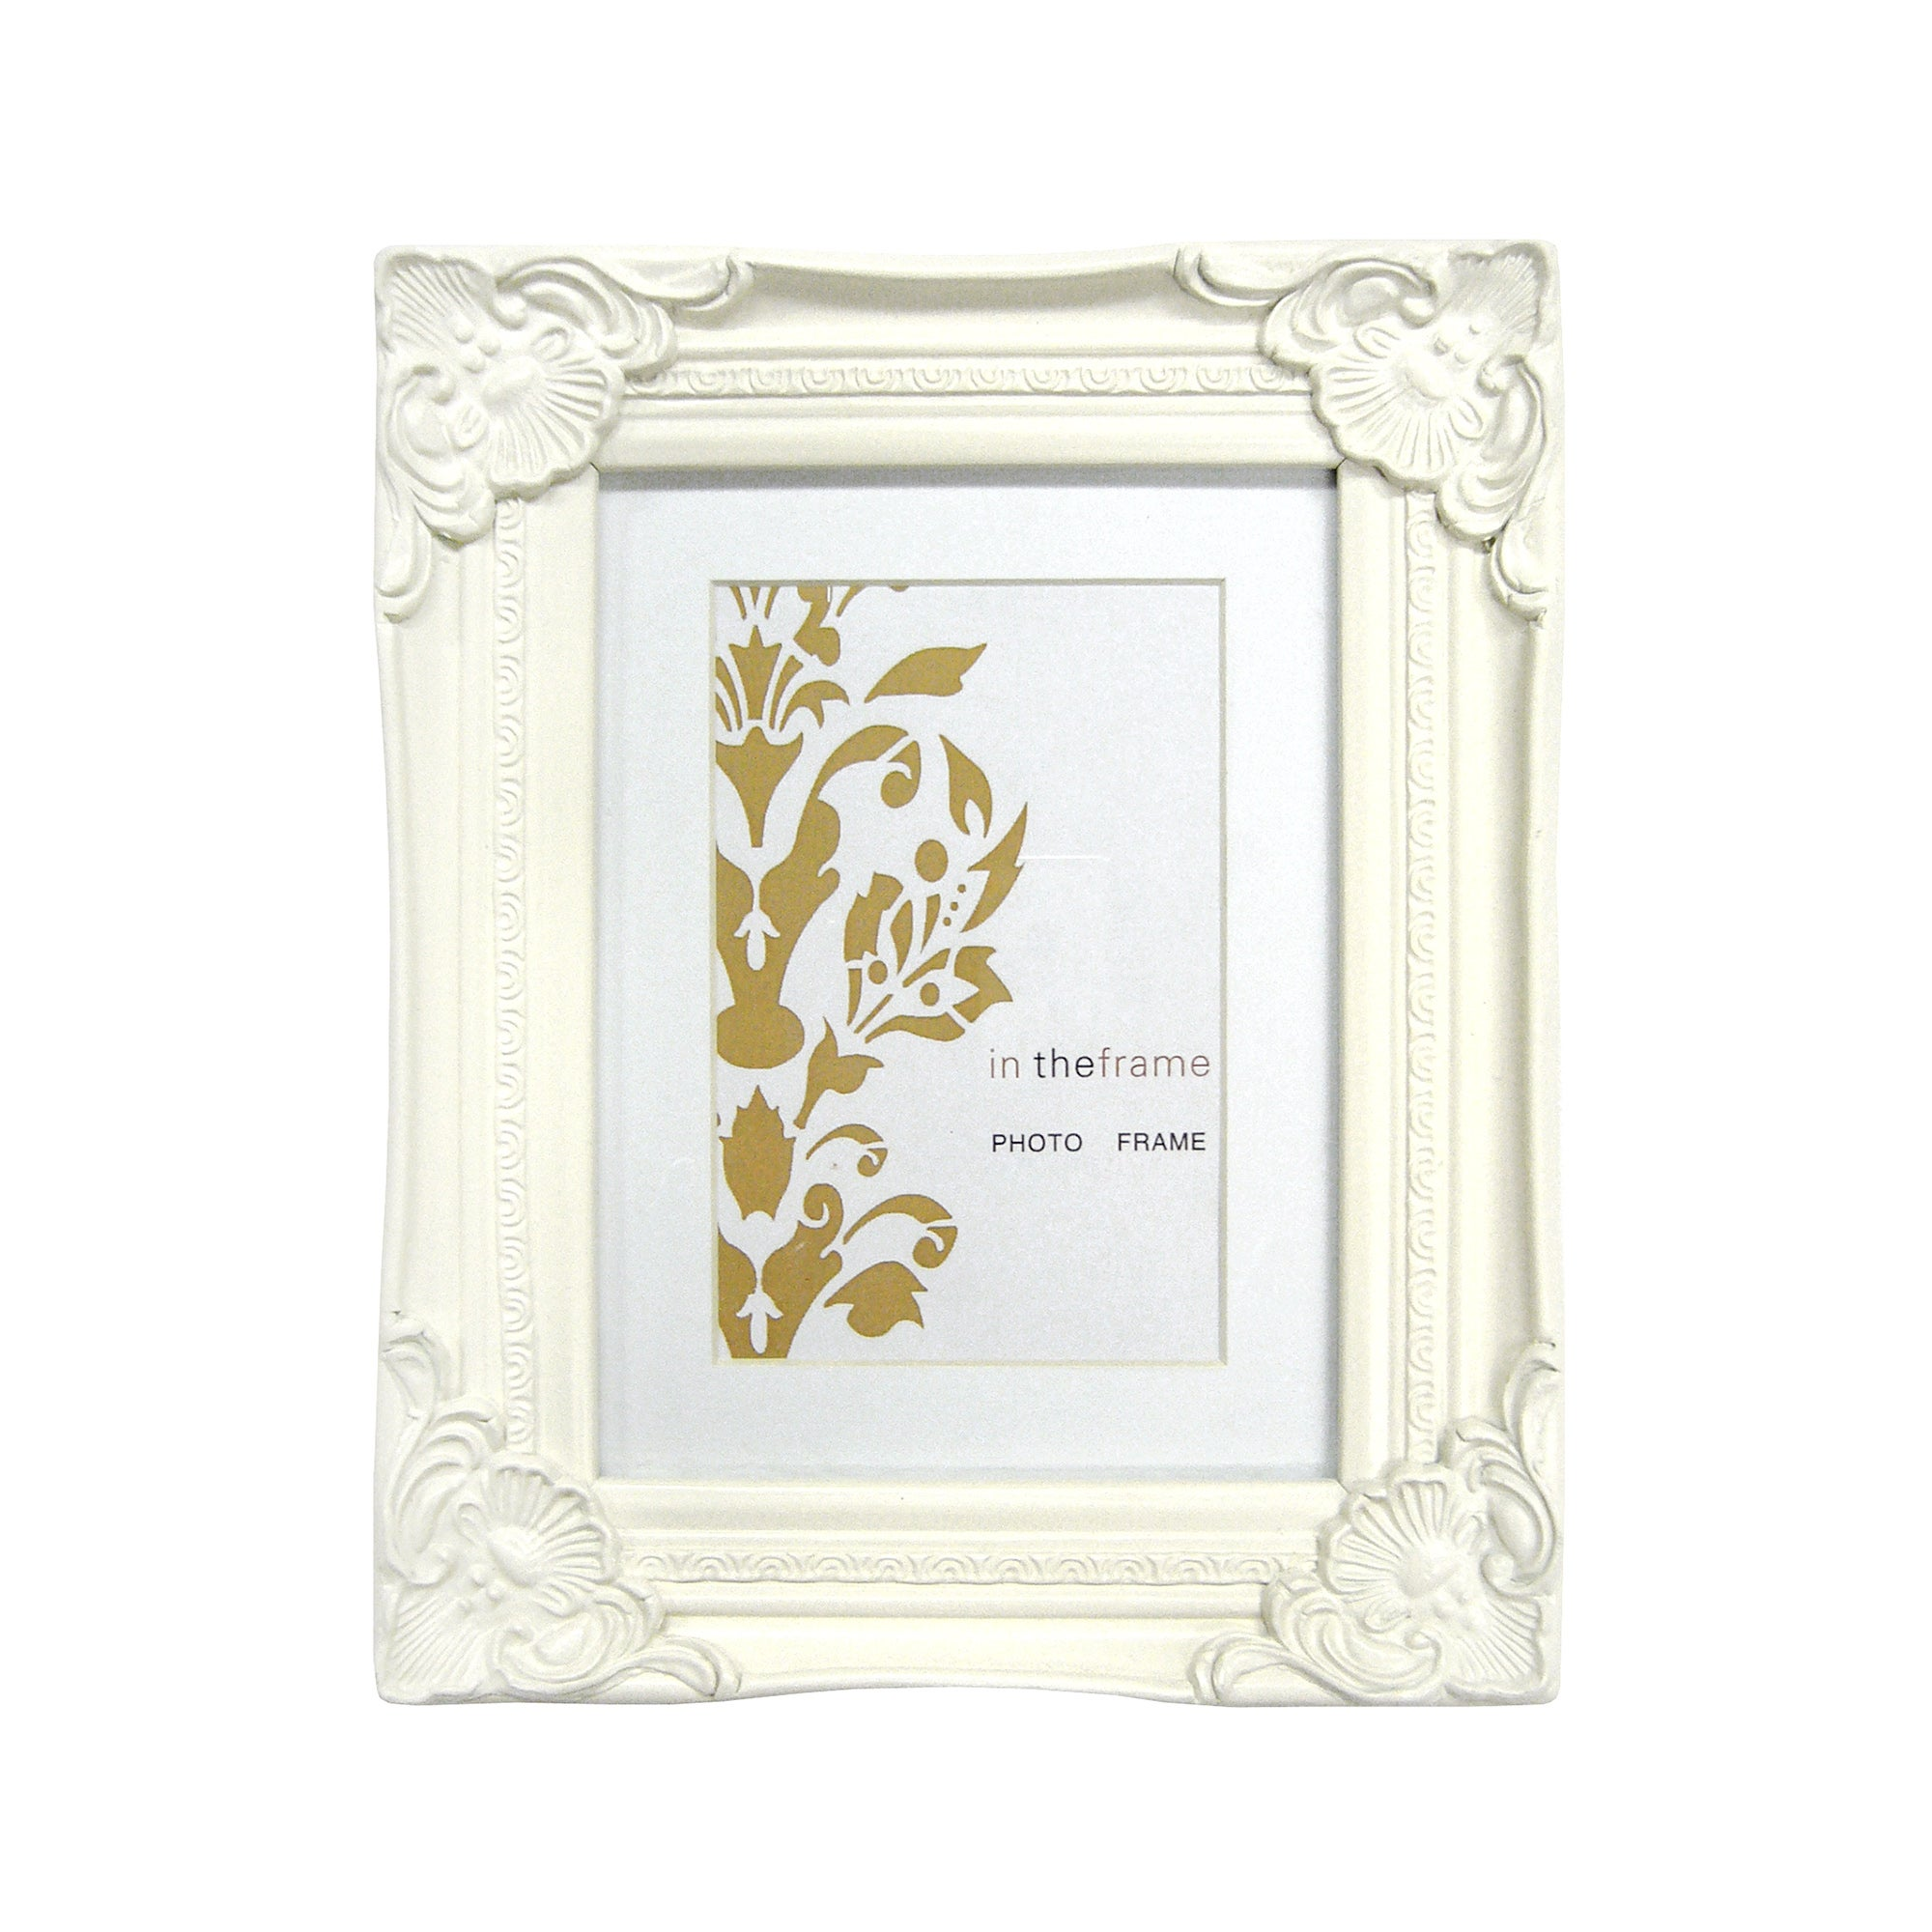 Cream Vintage Swept Photo Frame